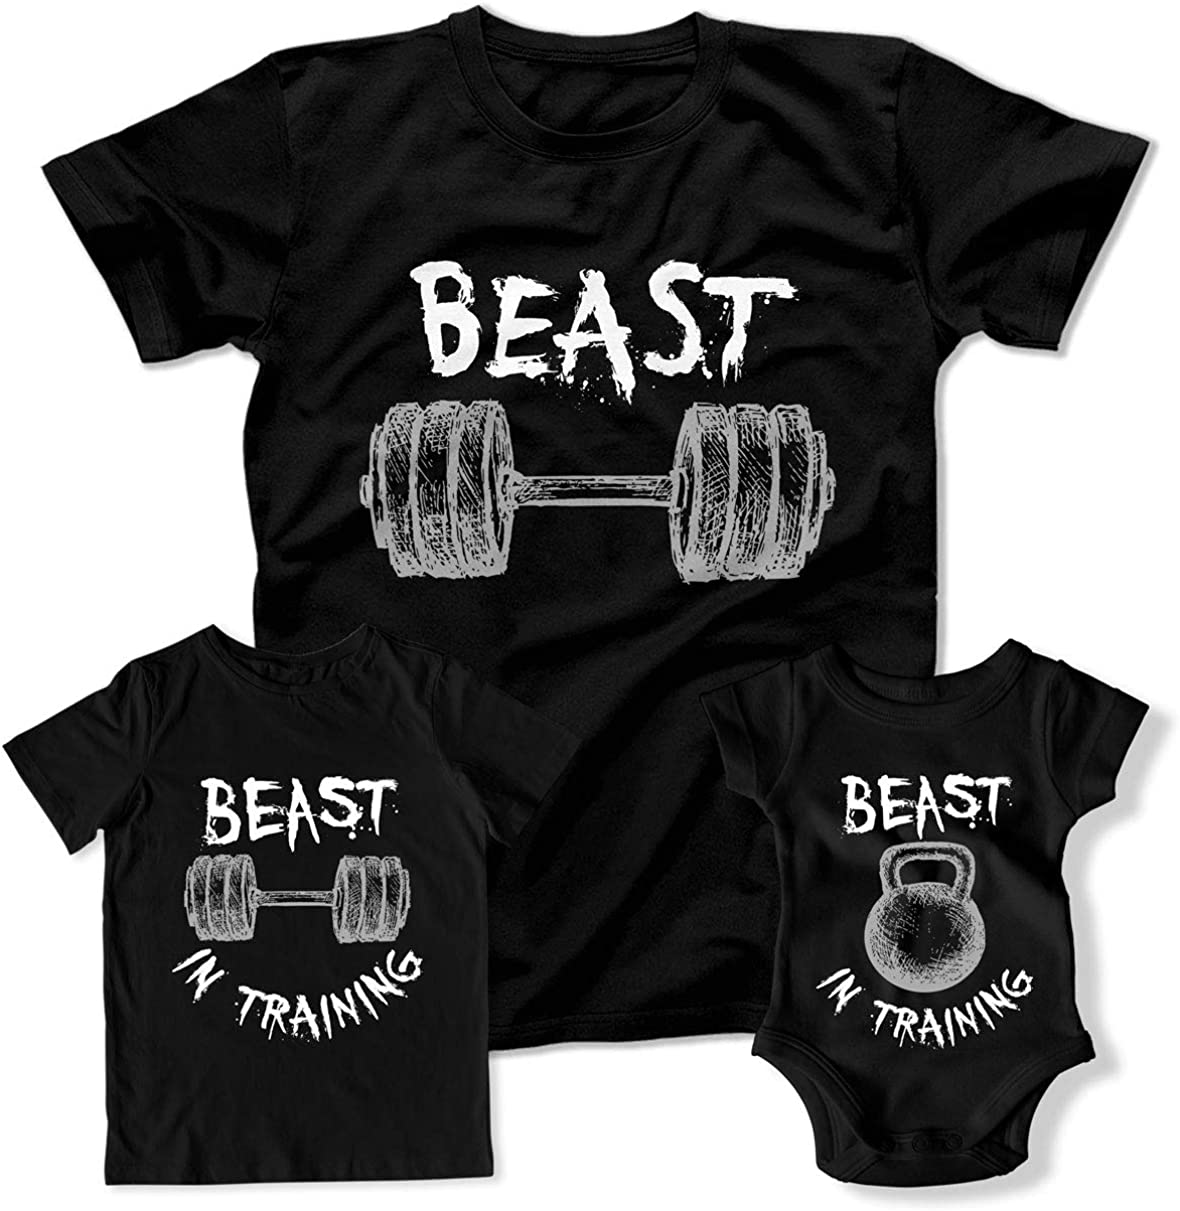 Beast Workout Beast in Training Family Matching Outfits Workout Shirts Gym DN-750-51-52